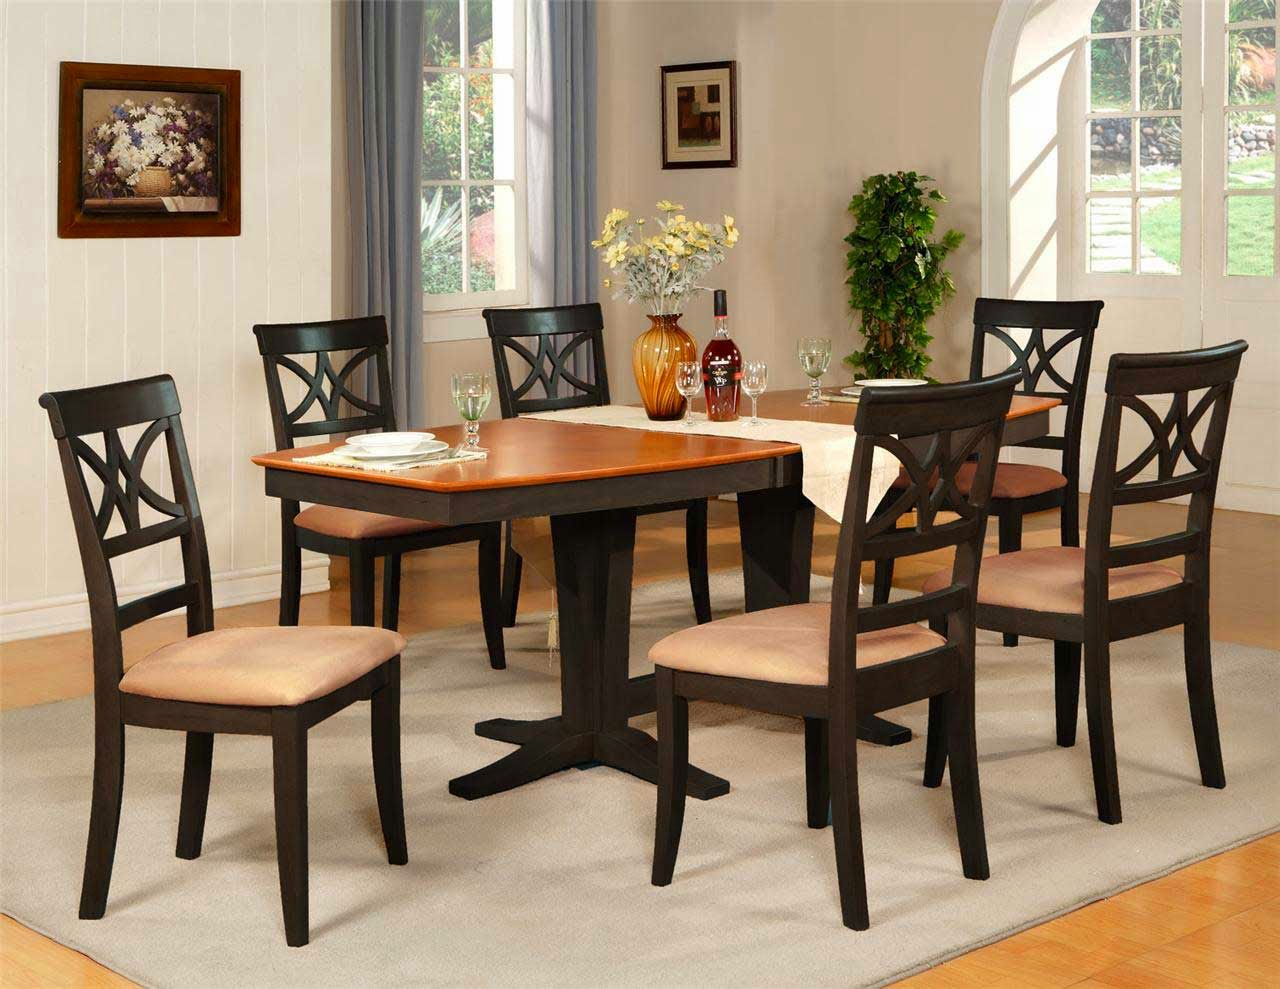 Dining room table centerpiece ideas for Dining room table top ideas